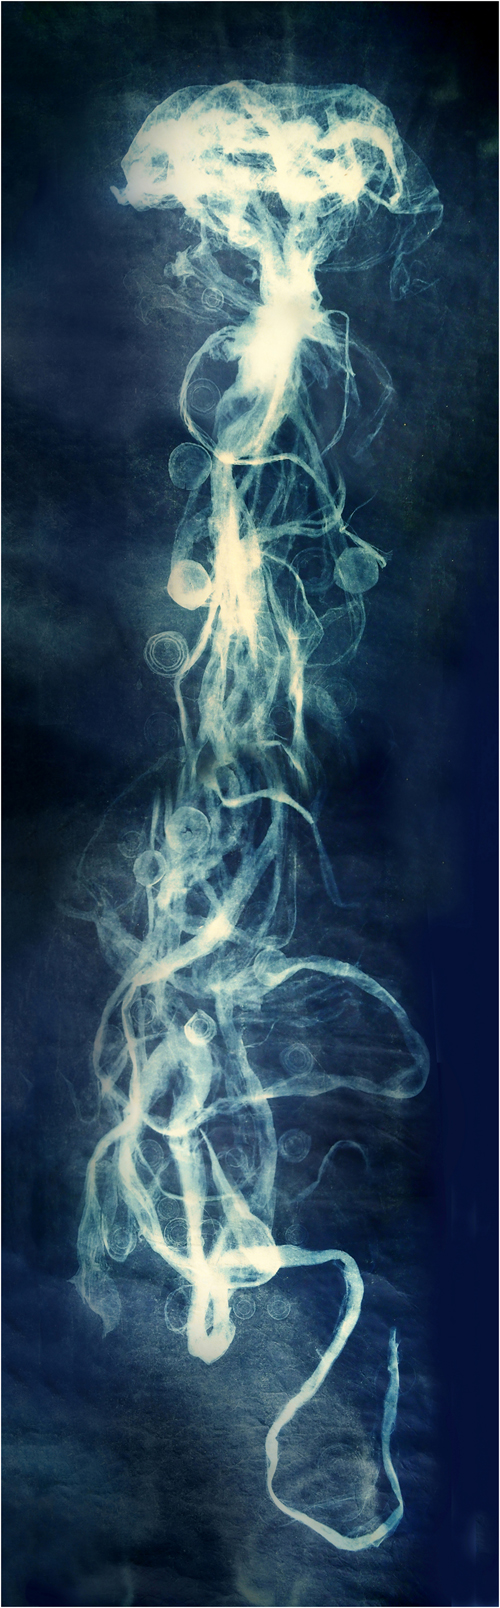 Tangled Up in Blue, Mary Ittner, Cyanotype